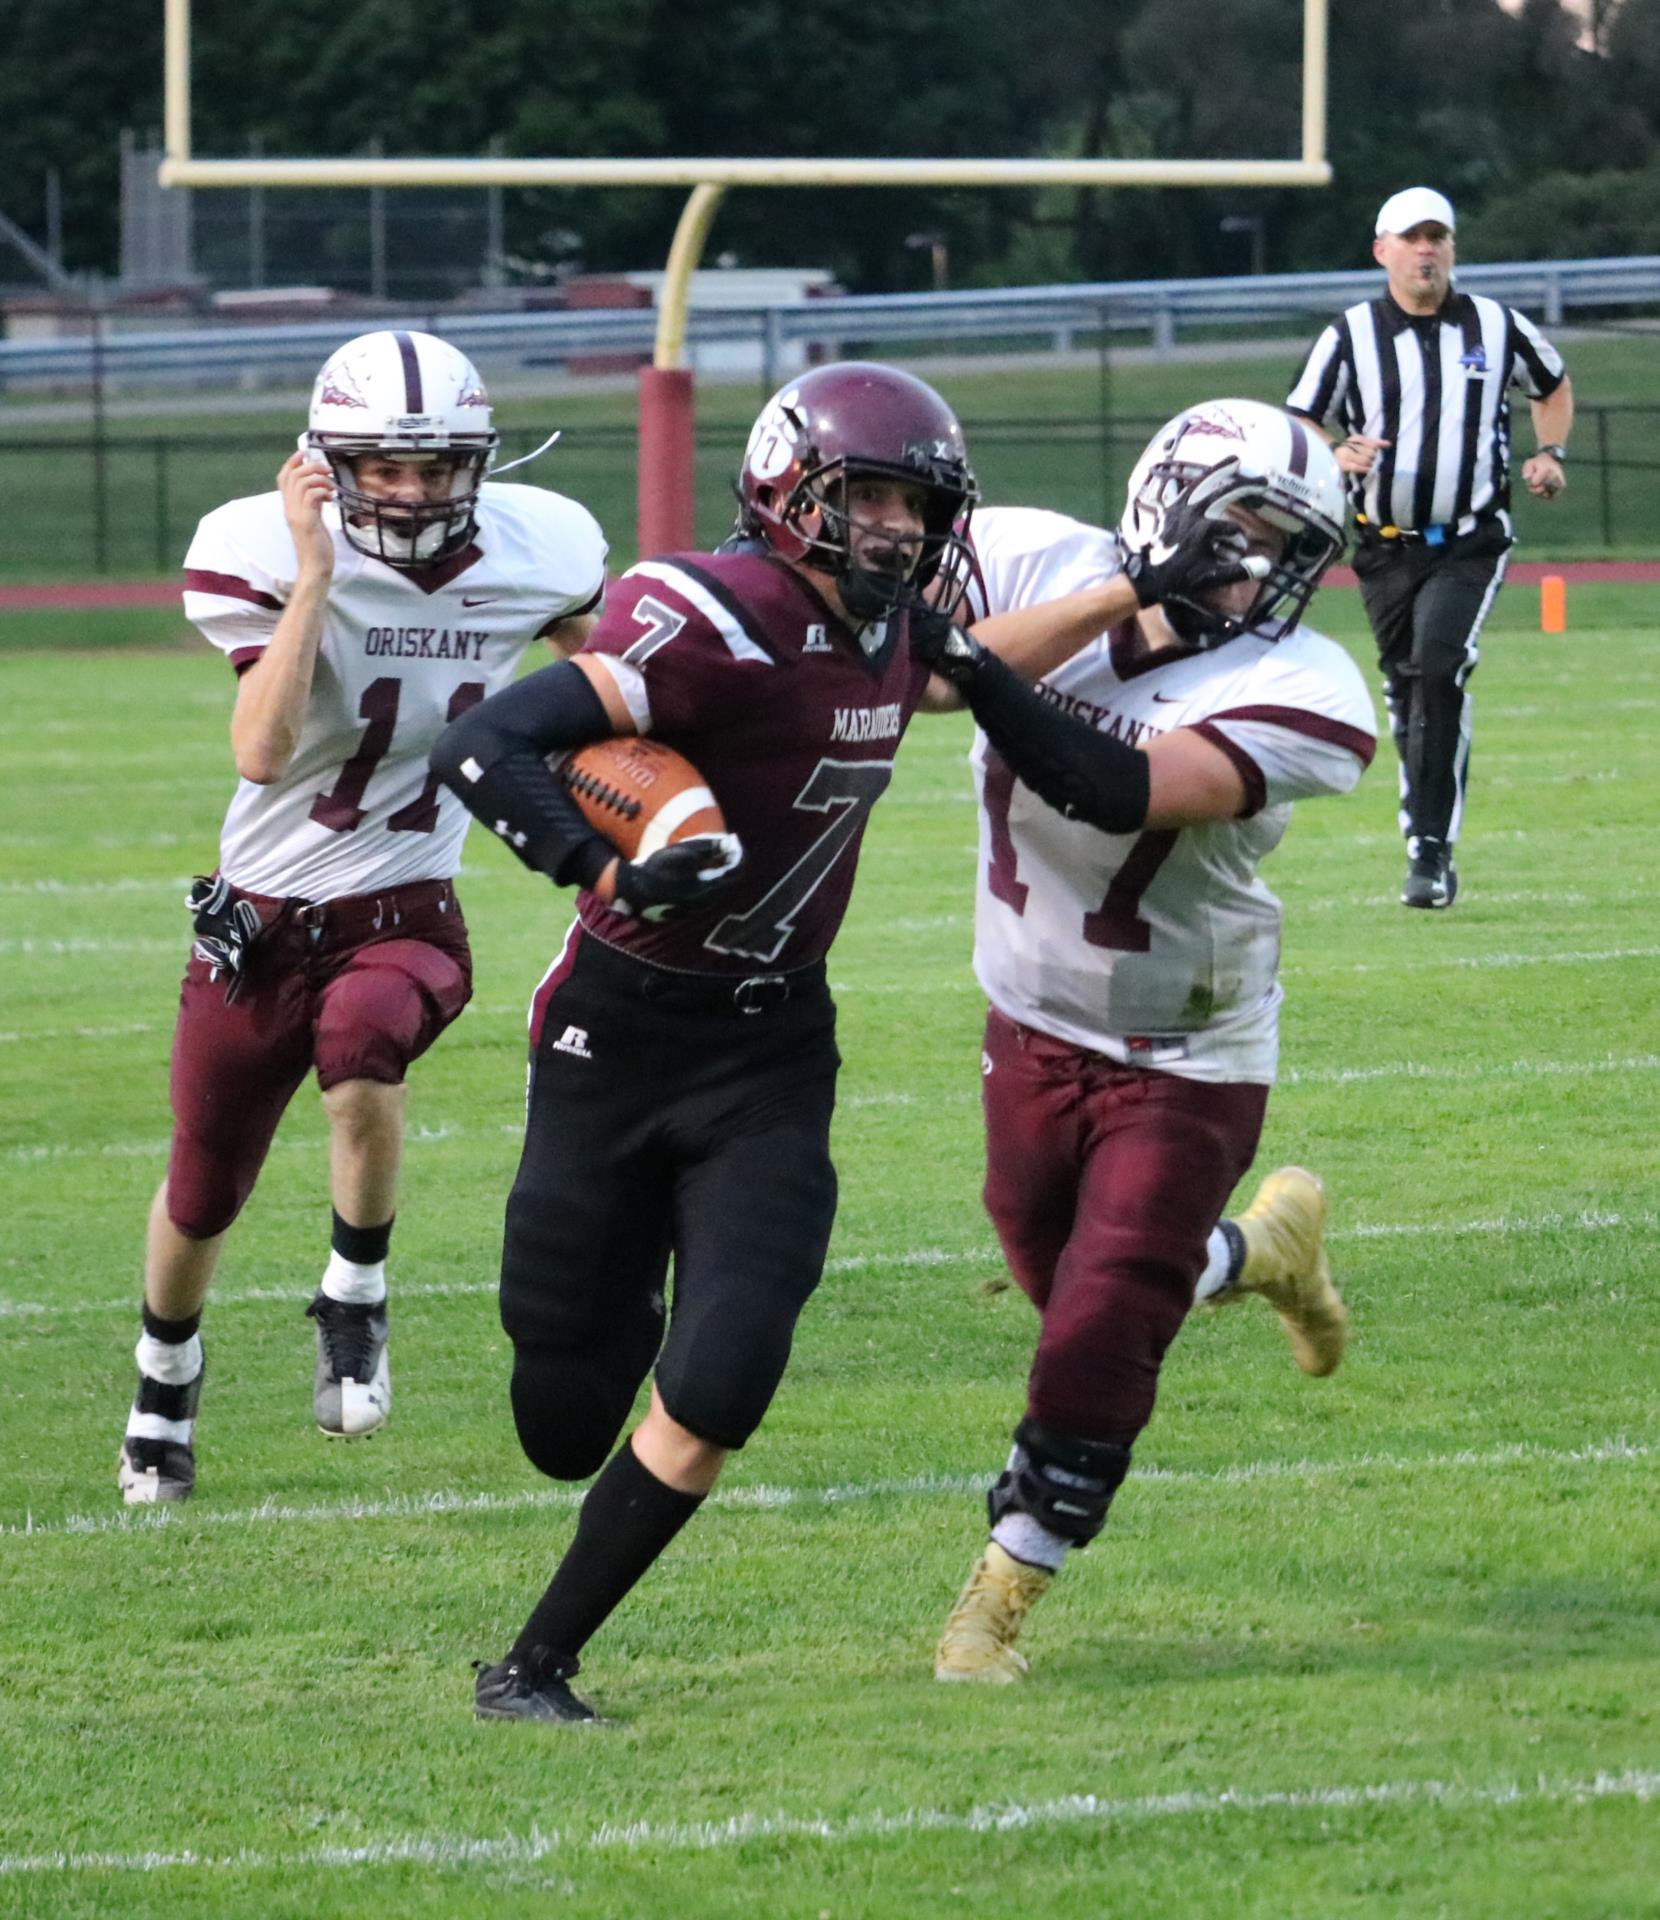 Sherburne-Earlville Football 2018